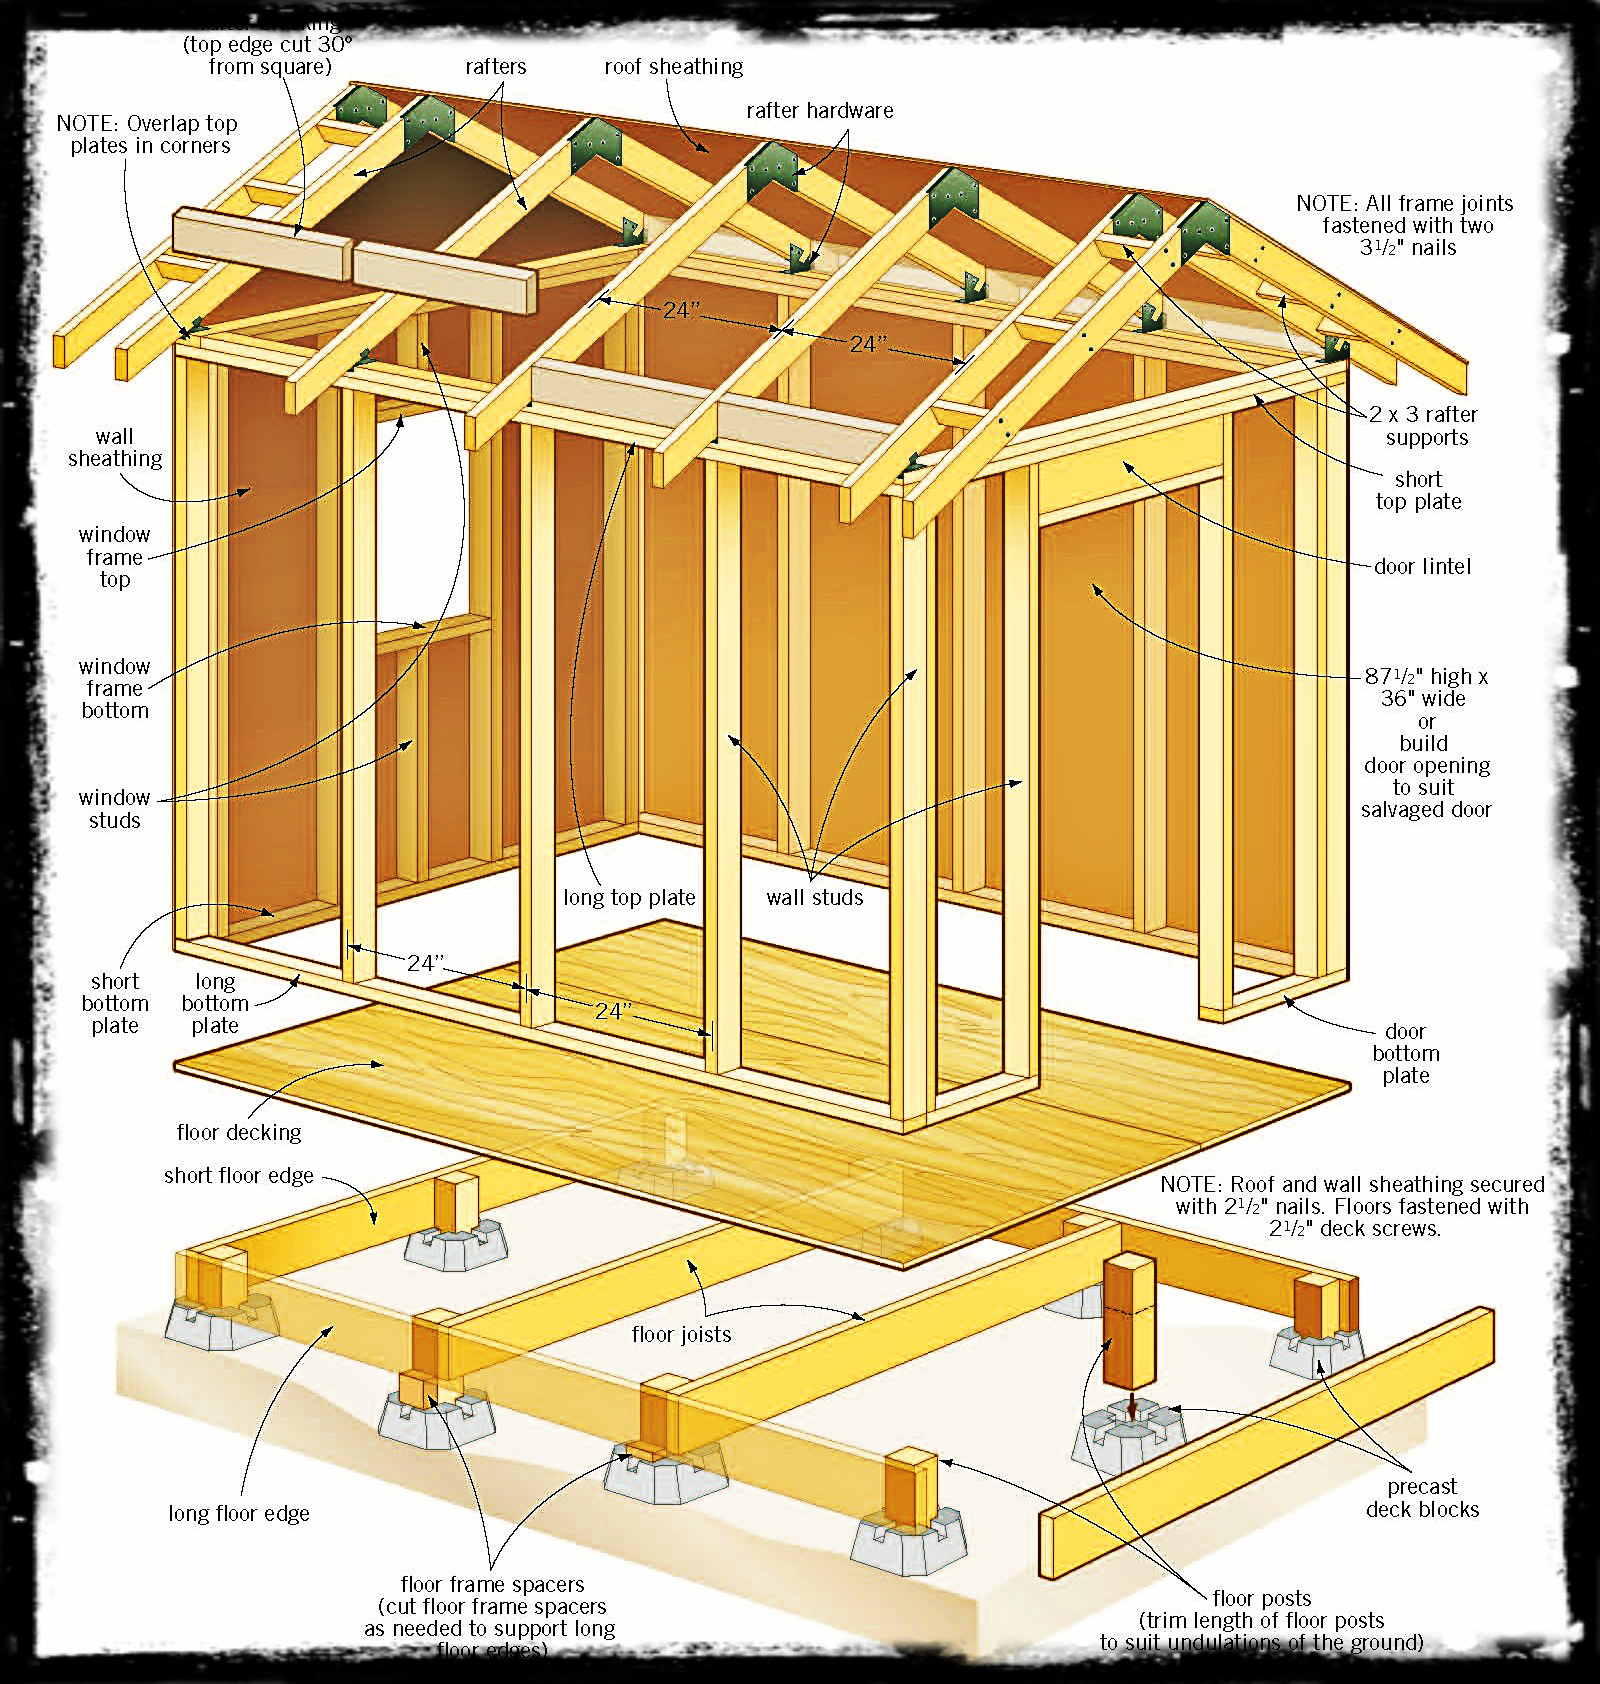 Shed Ideas Designs ryan shed plans 12000 shed plans and designs for easy shed building ryanshedplans Backyard Shed Designs 12x20 Gable Shed Plans Free Garden Shed Designs Shed Design Ideas